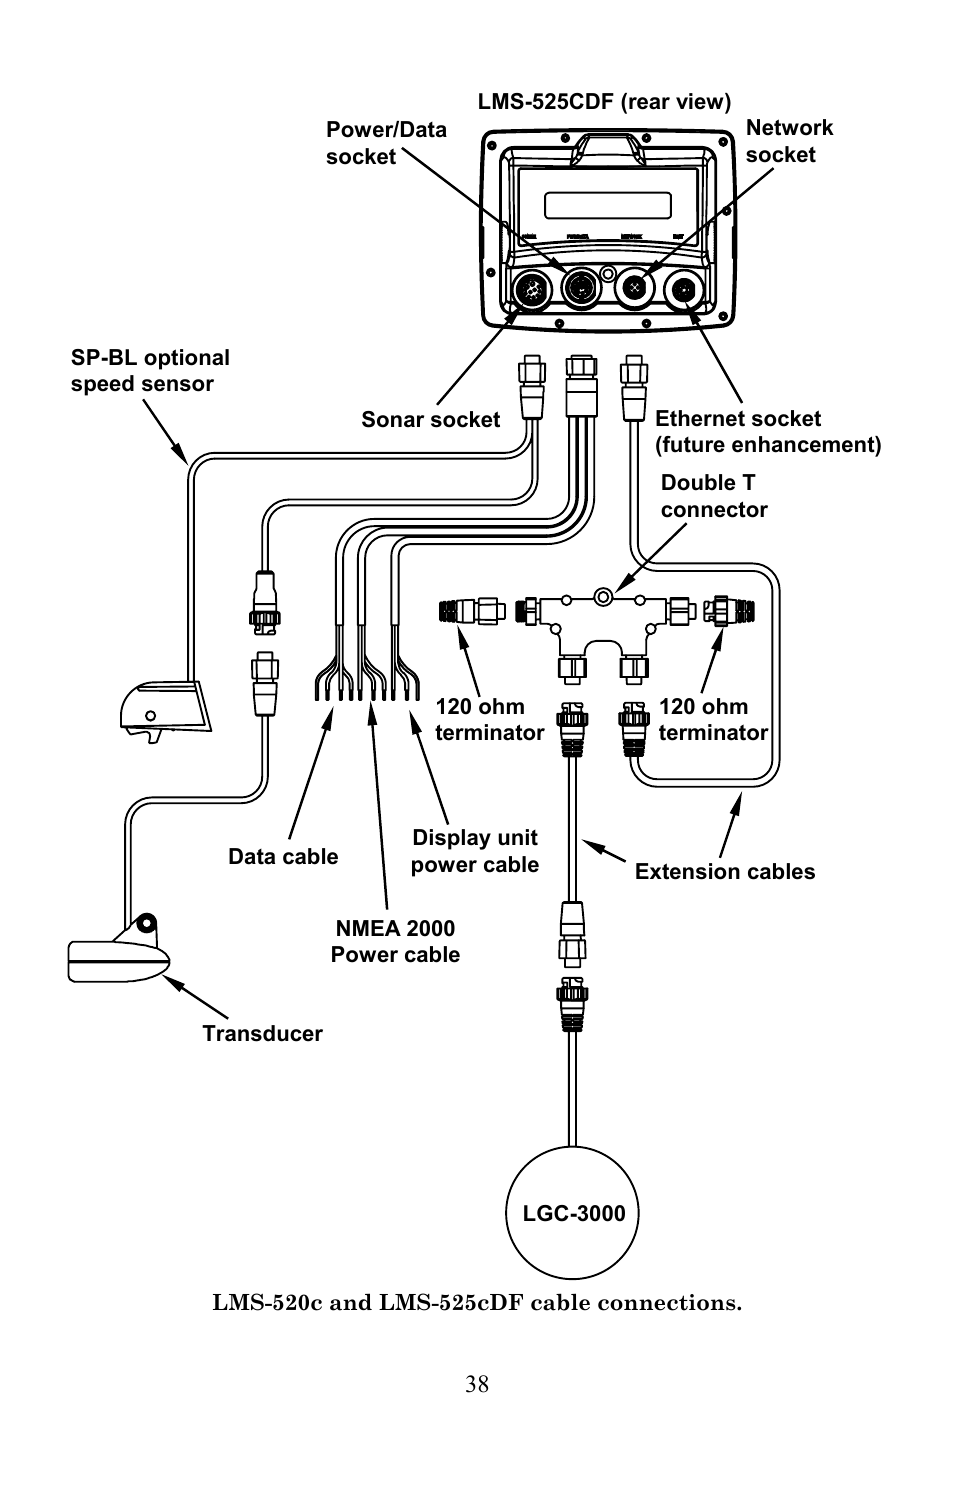 lowrance wiring schematic lowrance electronic lms 520c user manual page 48 252 also  lowrance electronic lms 520c user